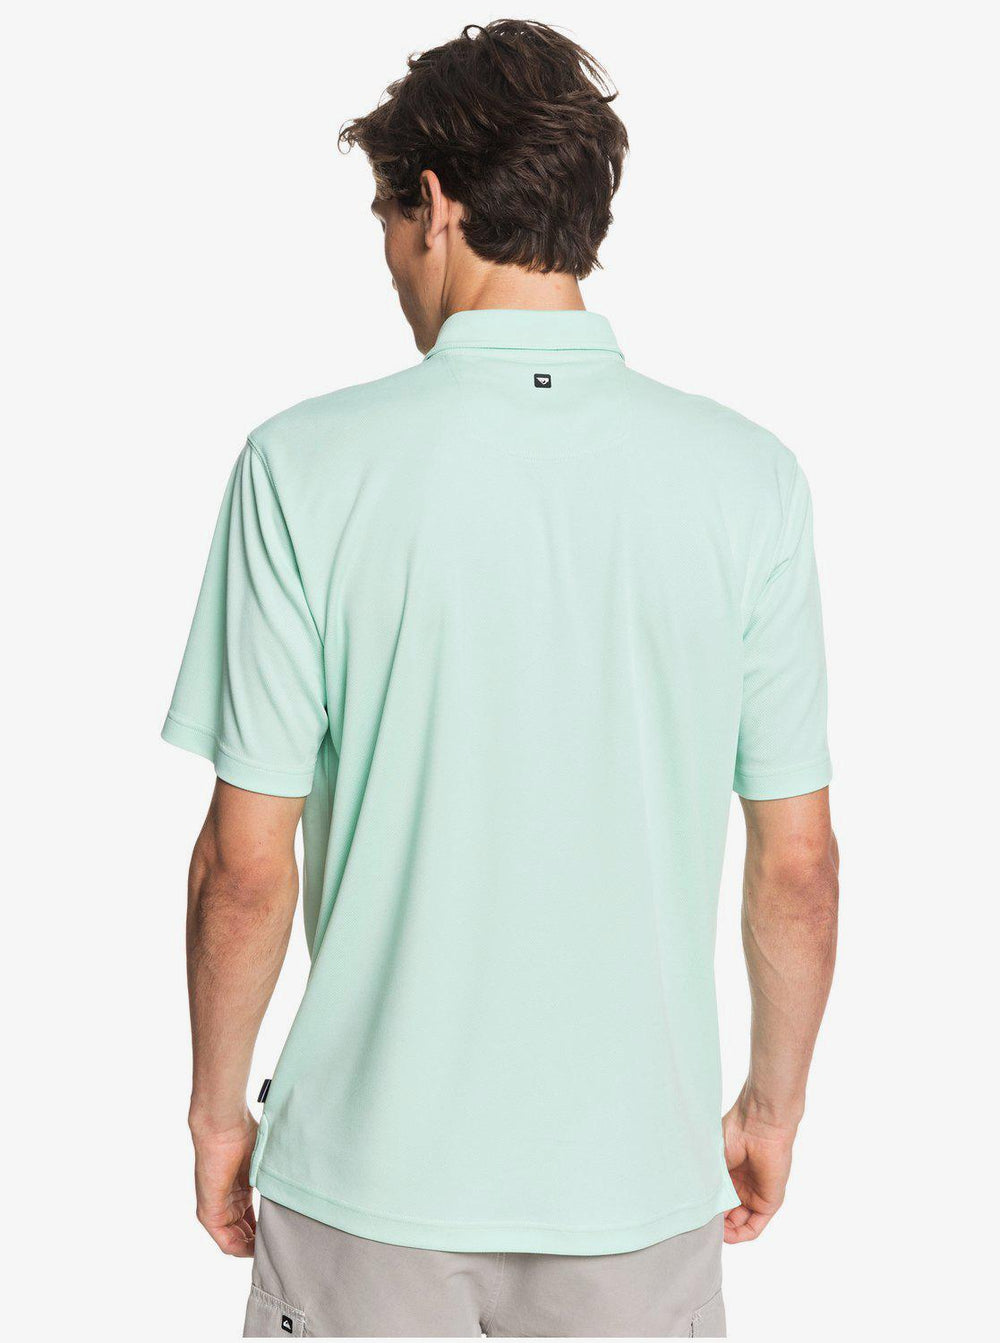 Waterman Water Polo Short SleeveO Polo Shirt